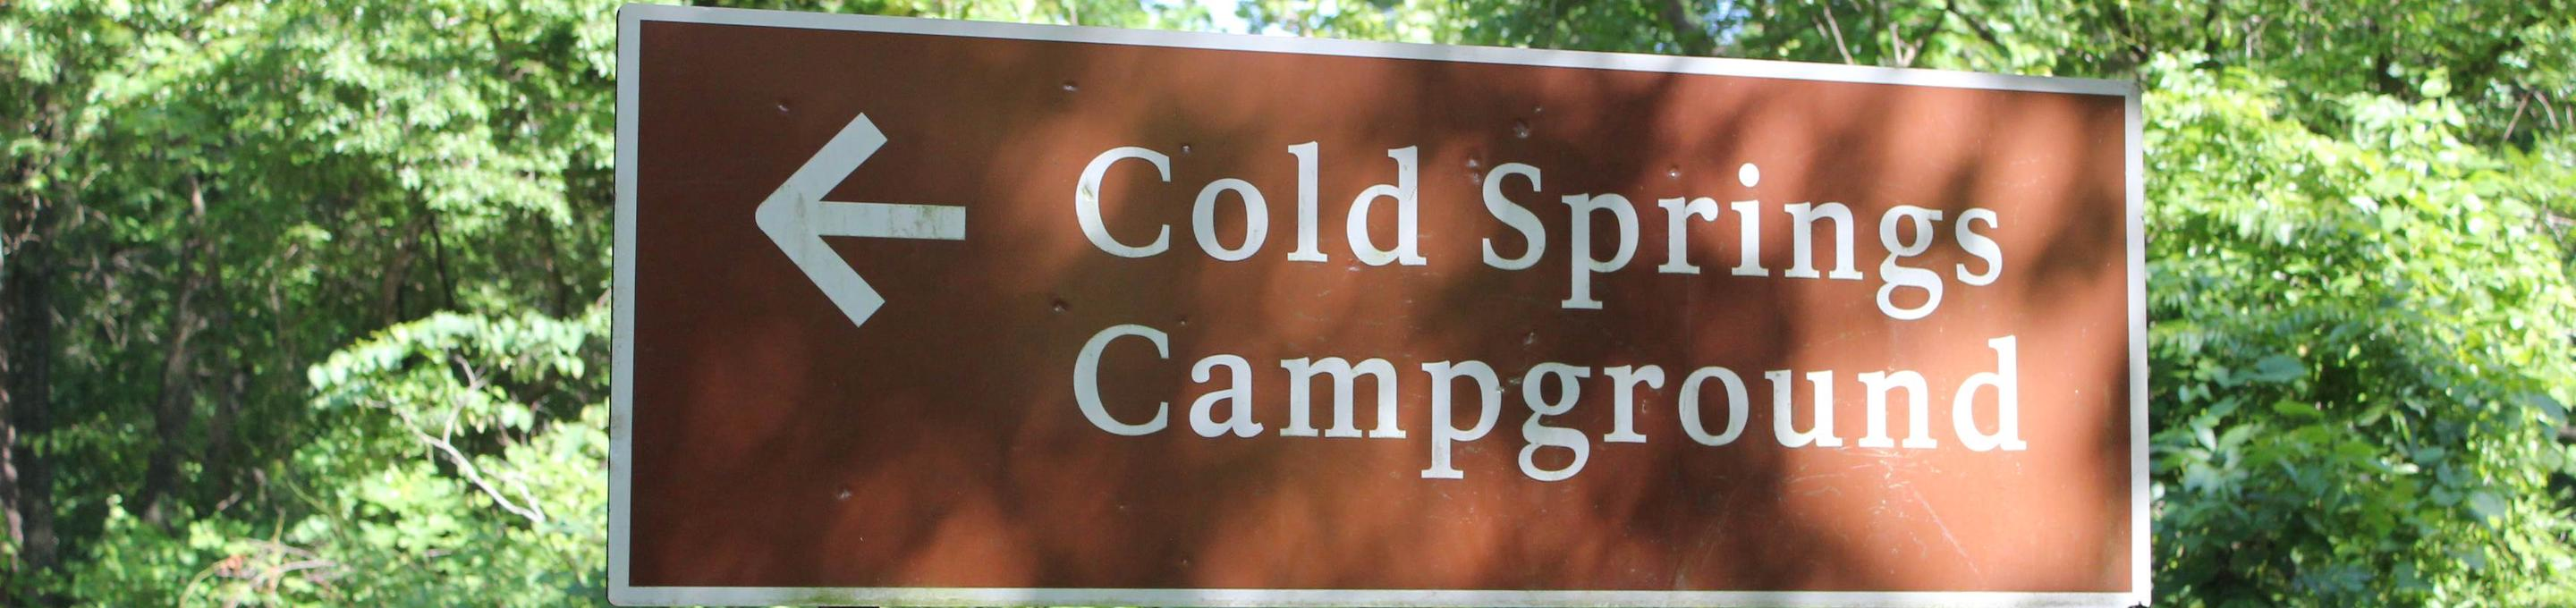 COLD SPRINGS GROUP CAMP (OK) CHICKASAW NRACold Springs Campground